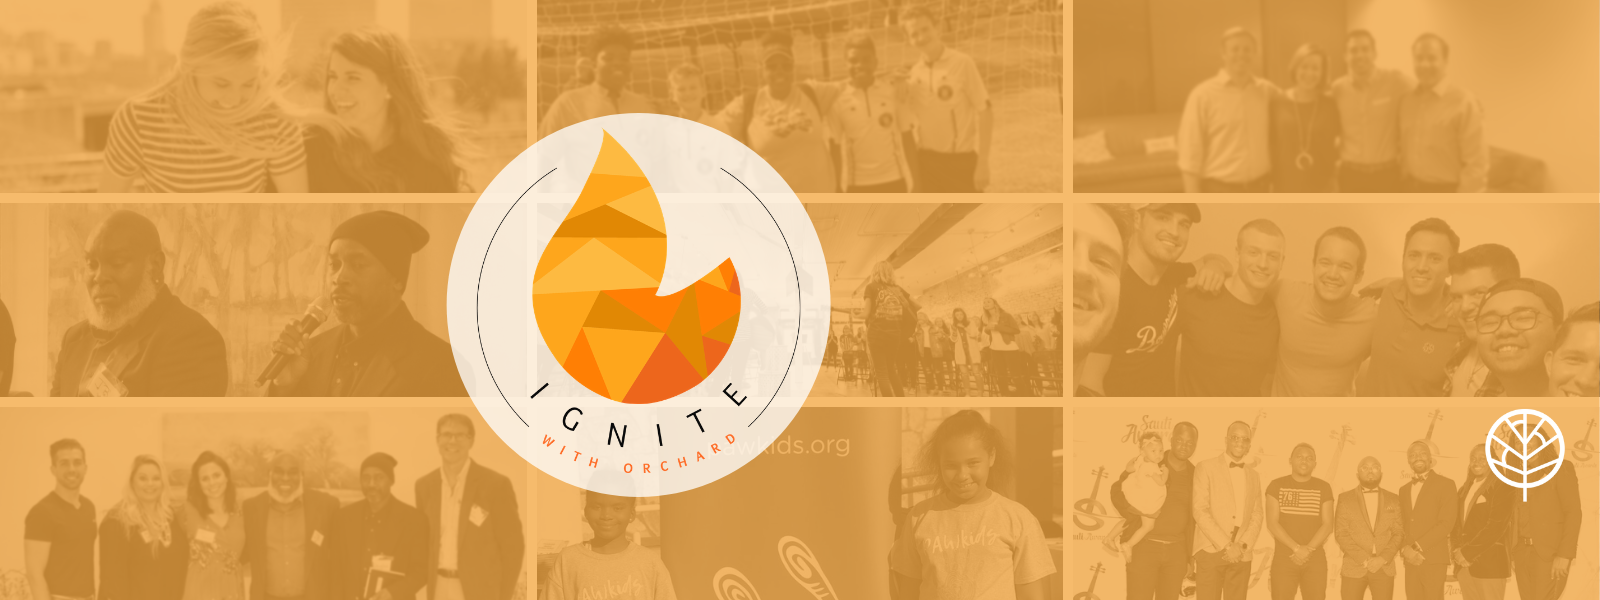 Ignite: to set ablaze, to set in motion, or unleash. image